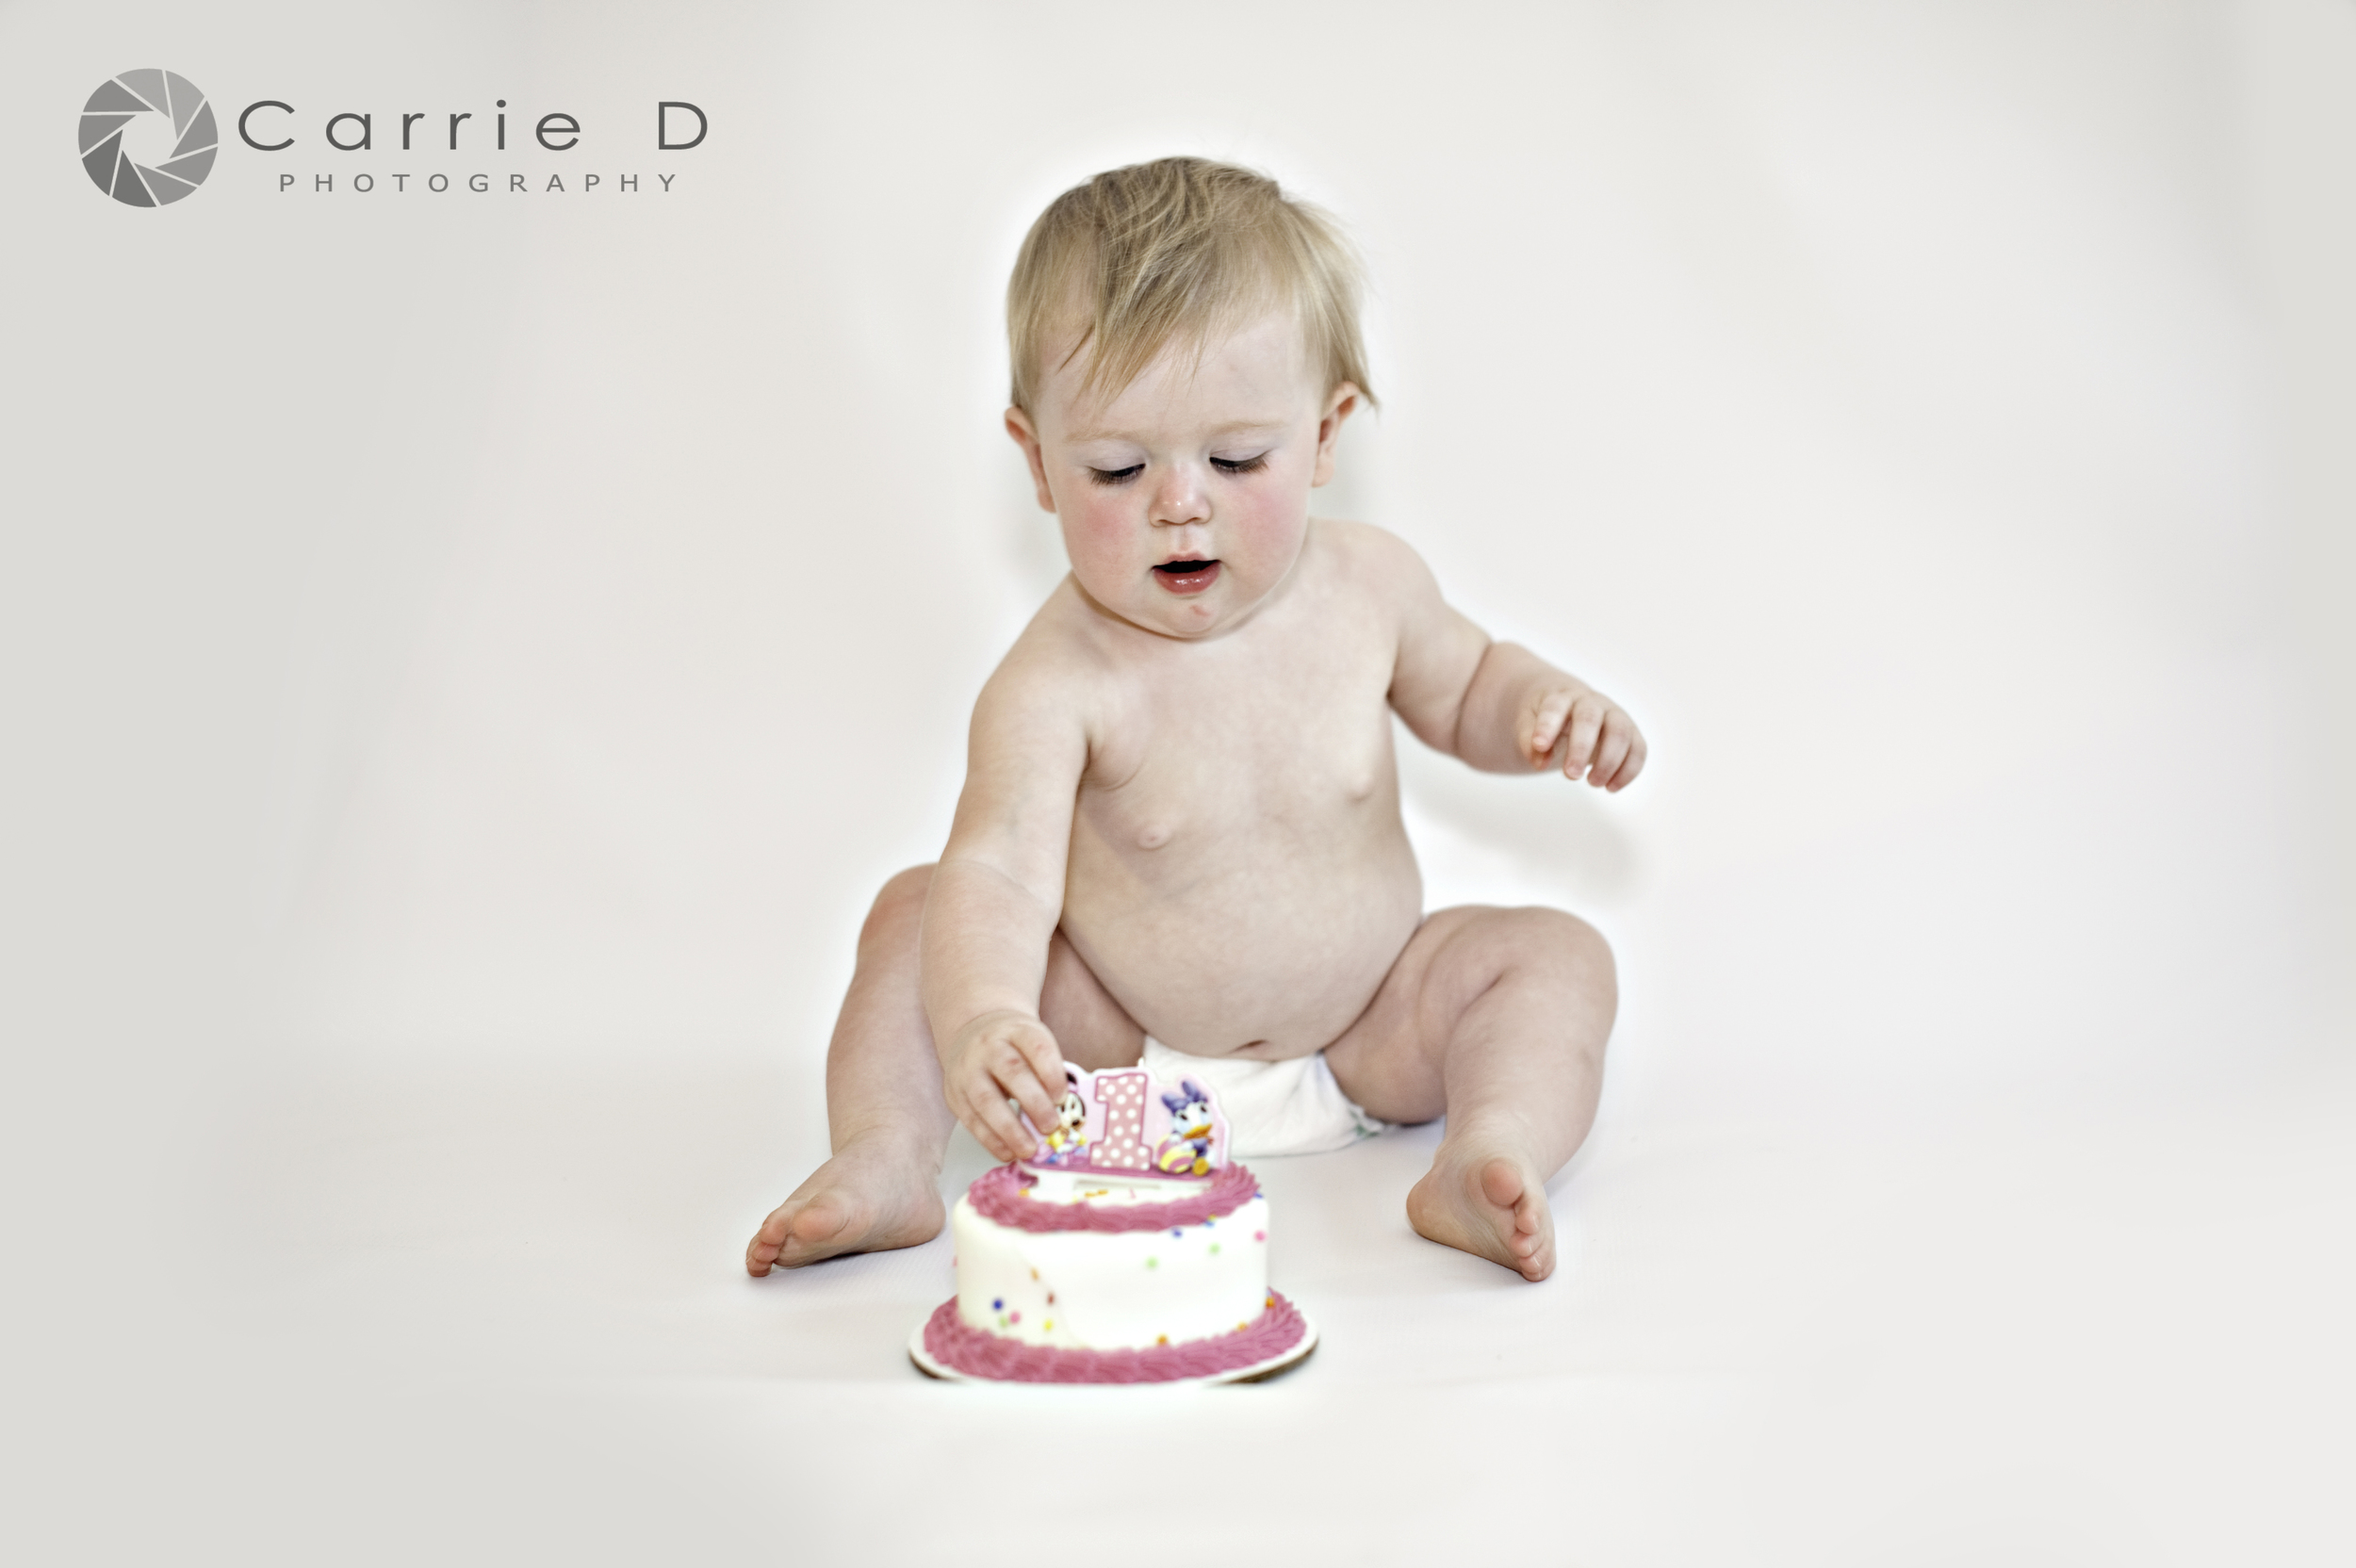 Baltimore Photographer – Baltimore Portrait Photographer – Baltimore Infant Photographer - Baltimore Newborn Photographer – Baltimore Family Photographer – Baltimore Milestone Photographer – Baltimore Cake Smash Photographer -  Baltimore Natural Light Photographer – Baltimore Lifestyle Photographer – Baltimore Natural Light Portrait - Maryland Photographer – Maryland Portrait Photographer – Maryland Family Photographer - Maryland Newborn Photographer – Maryland Infant Photographer – Maryland Milestone Photographer – Maryland Cake Smash Photographer - Maryland Natural Light Photographer – Maryland Lifestyle Photographer – Maryland Natural Light Portrait - Riley Cake_DSC_0157B